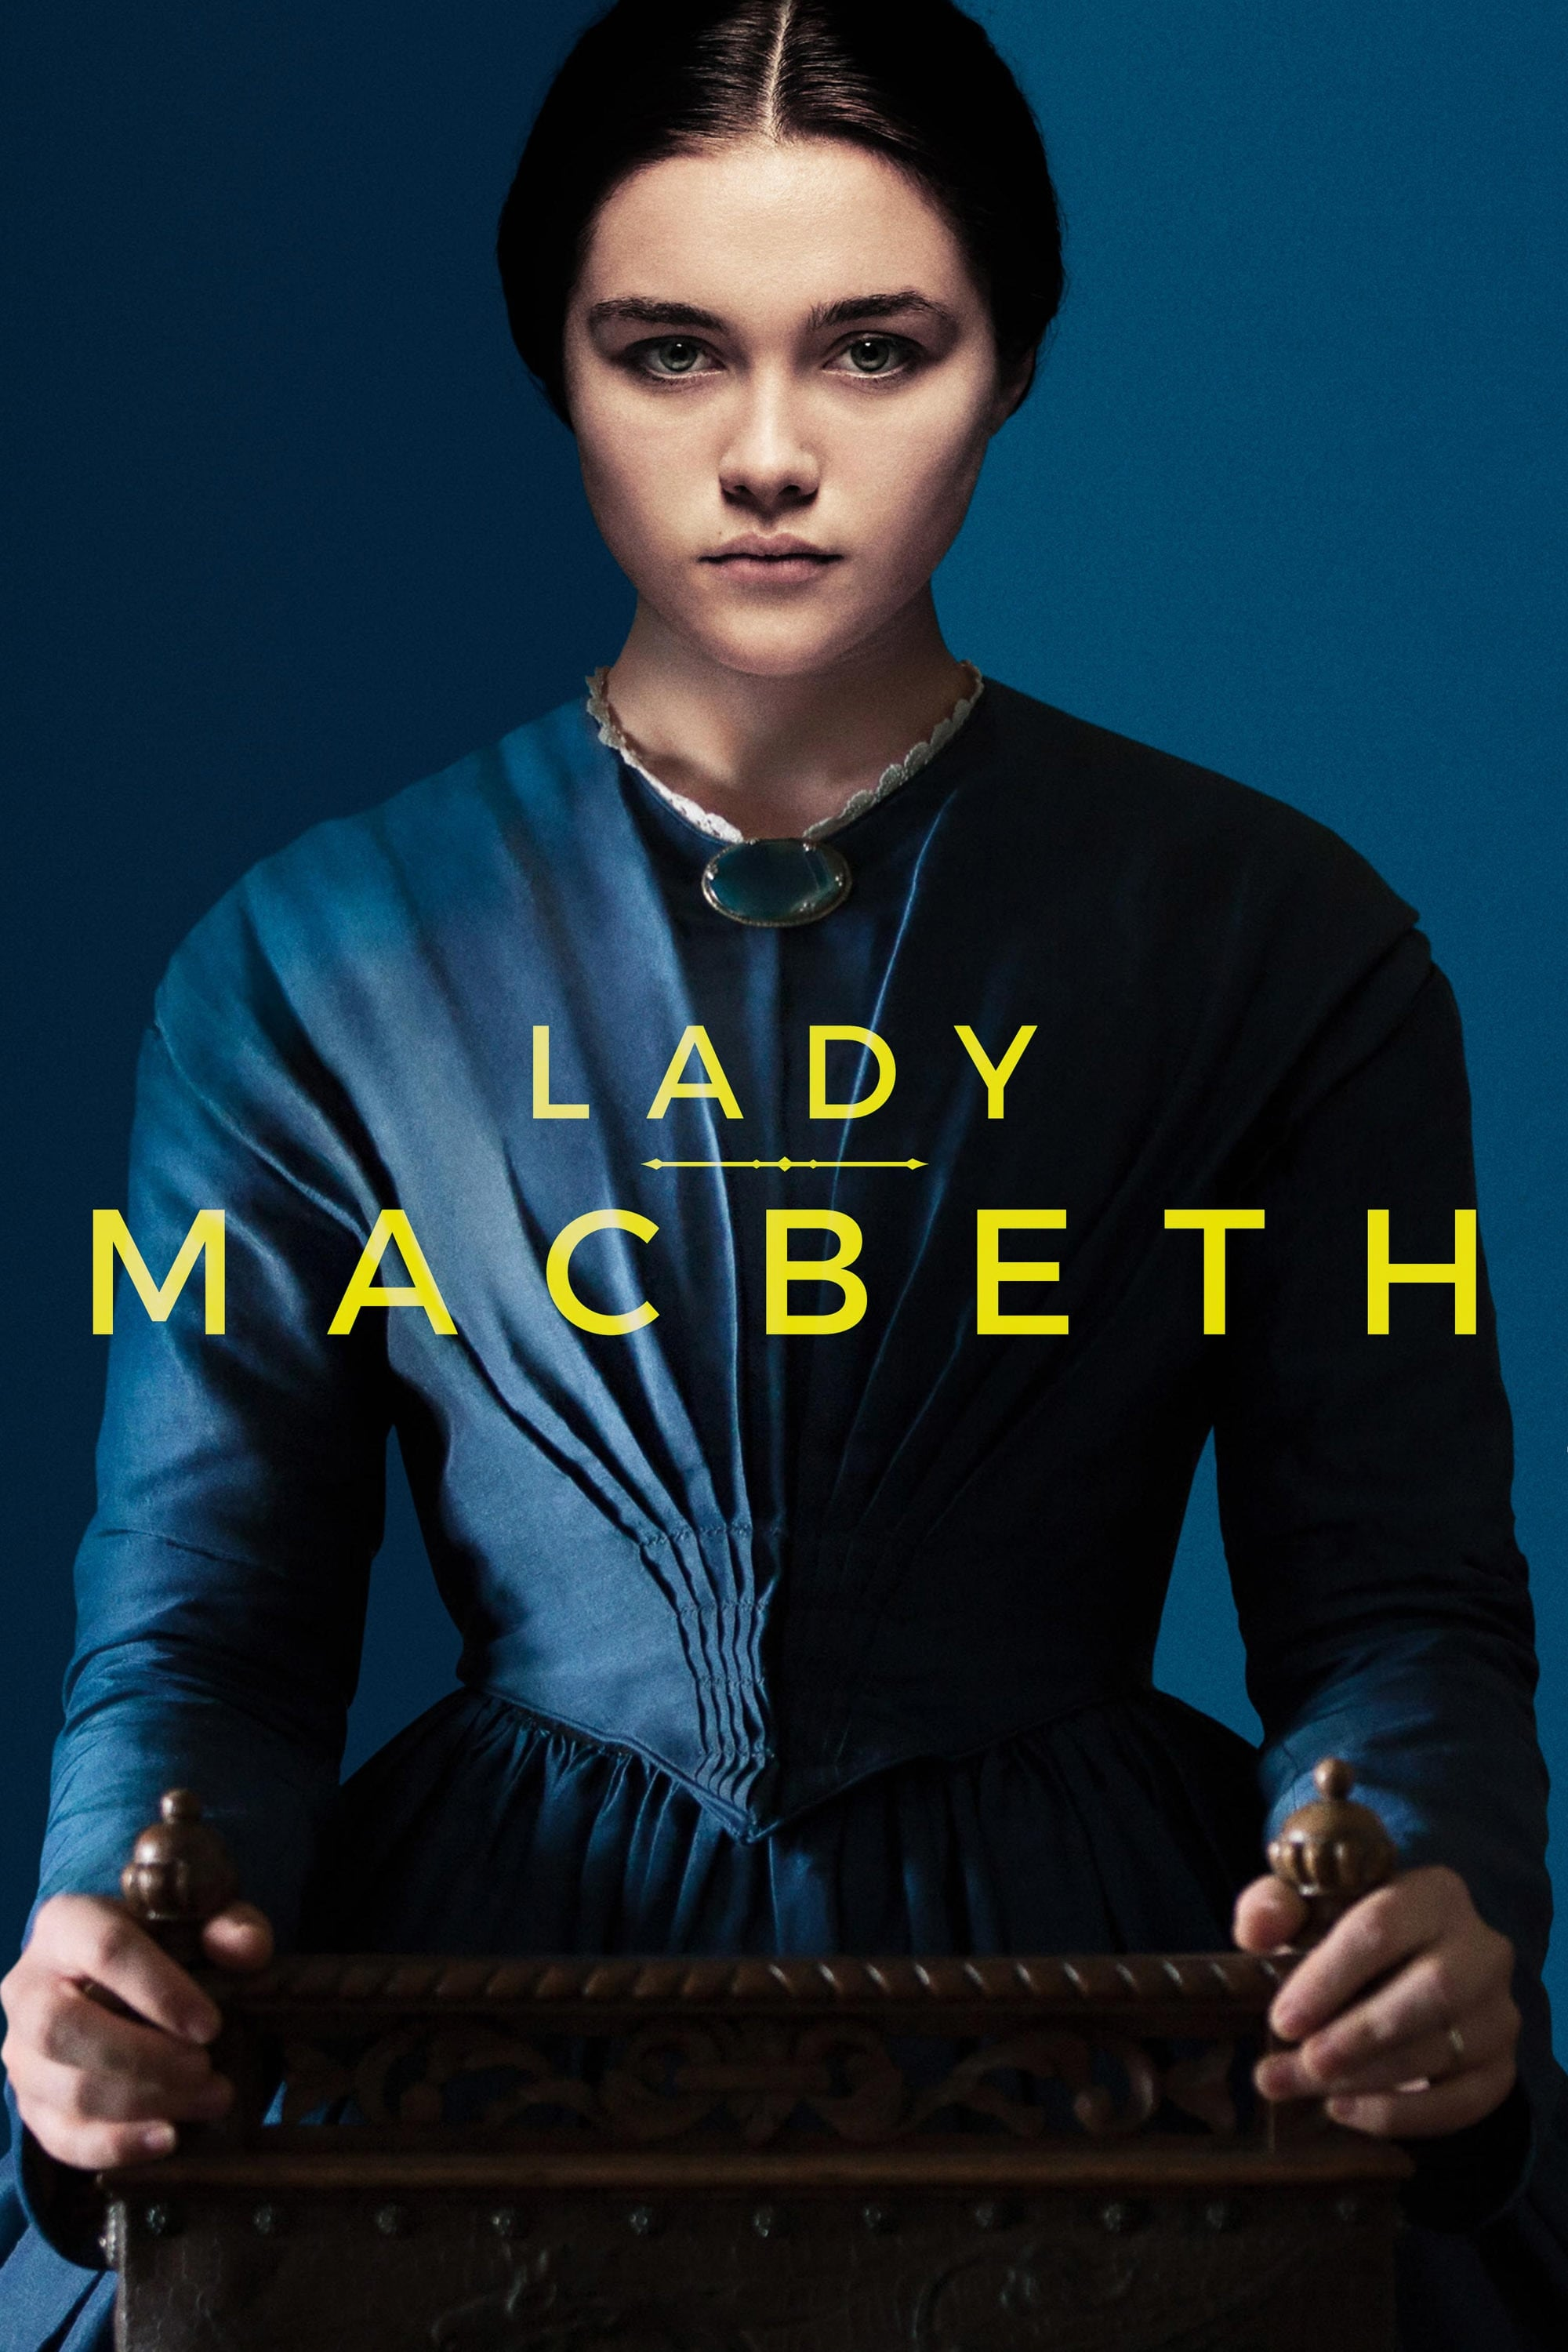 lady of macbeth The british film lady macbeth, directed by william oldroyd, immediately shrouds the female protagonist with a murderous and anti-hero air.